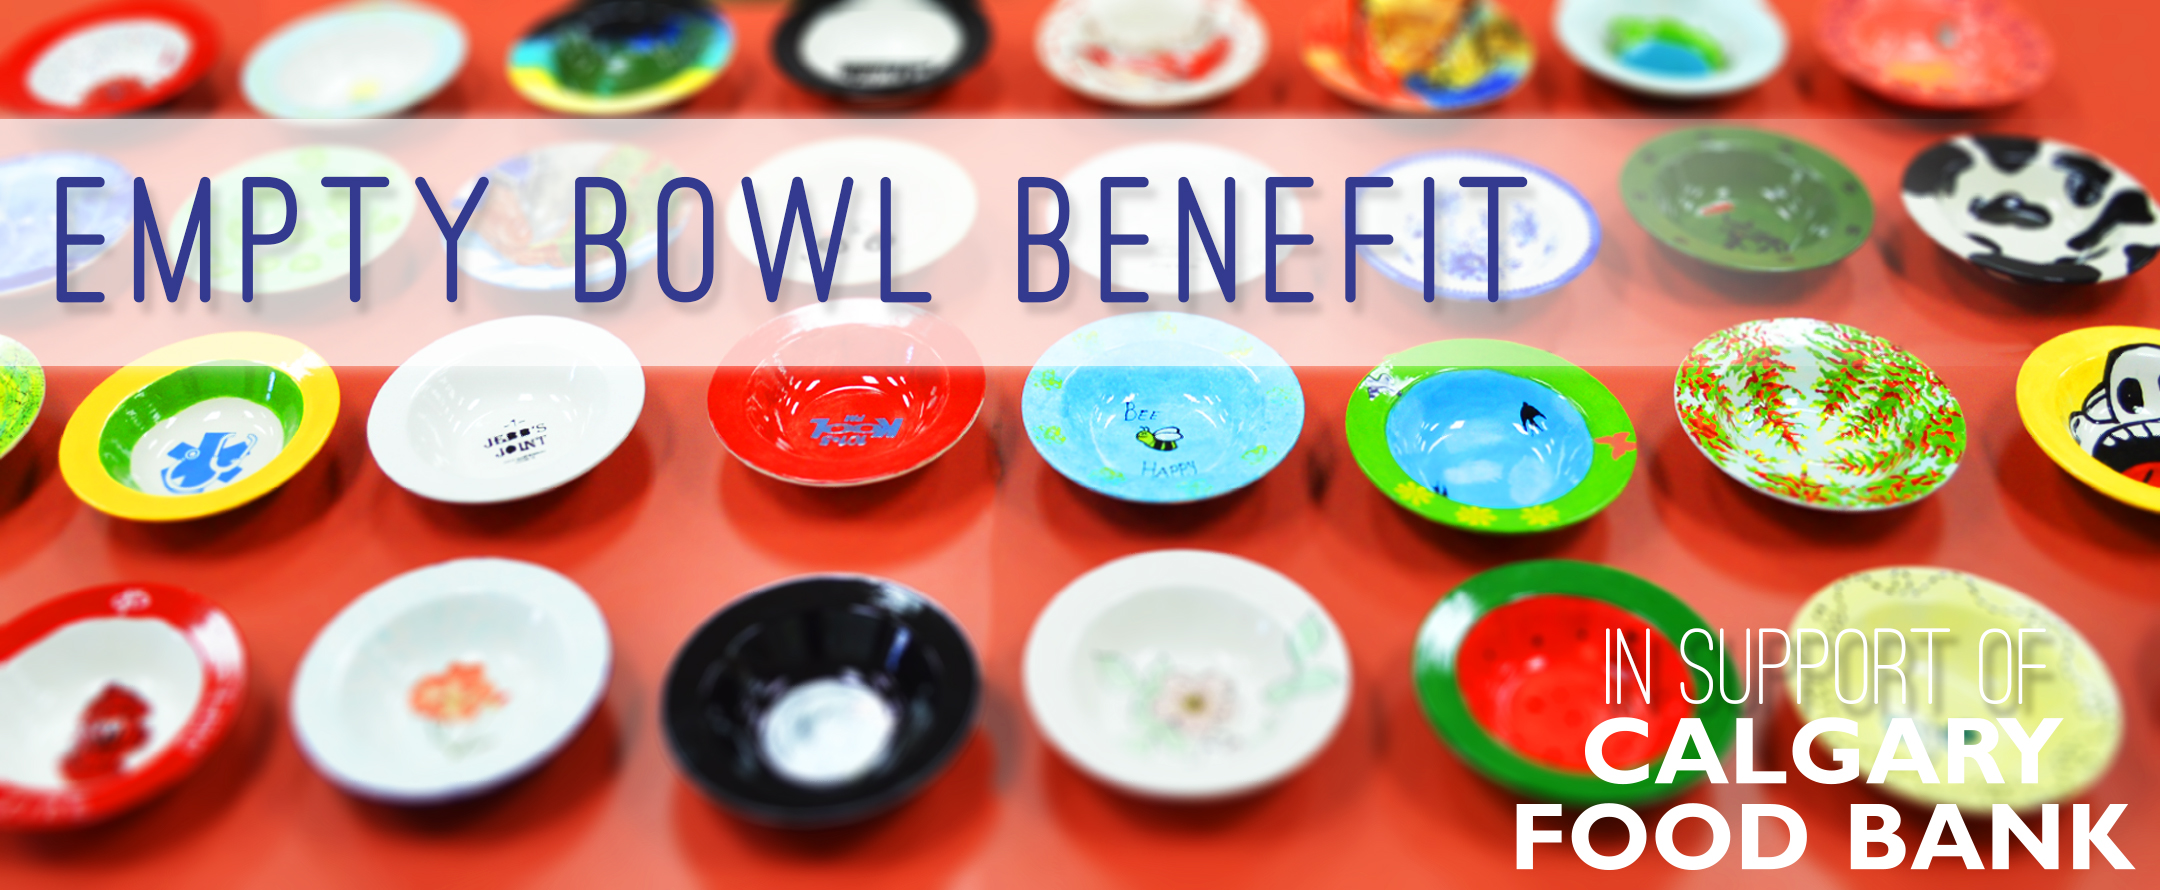 Empty Bowl Benefit Banner 2016